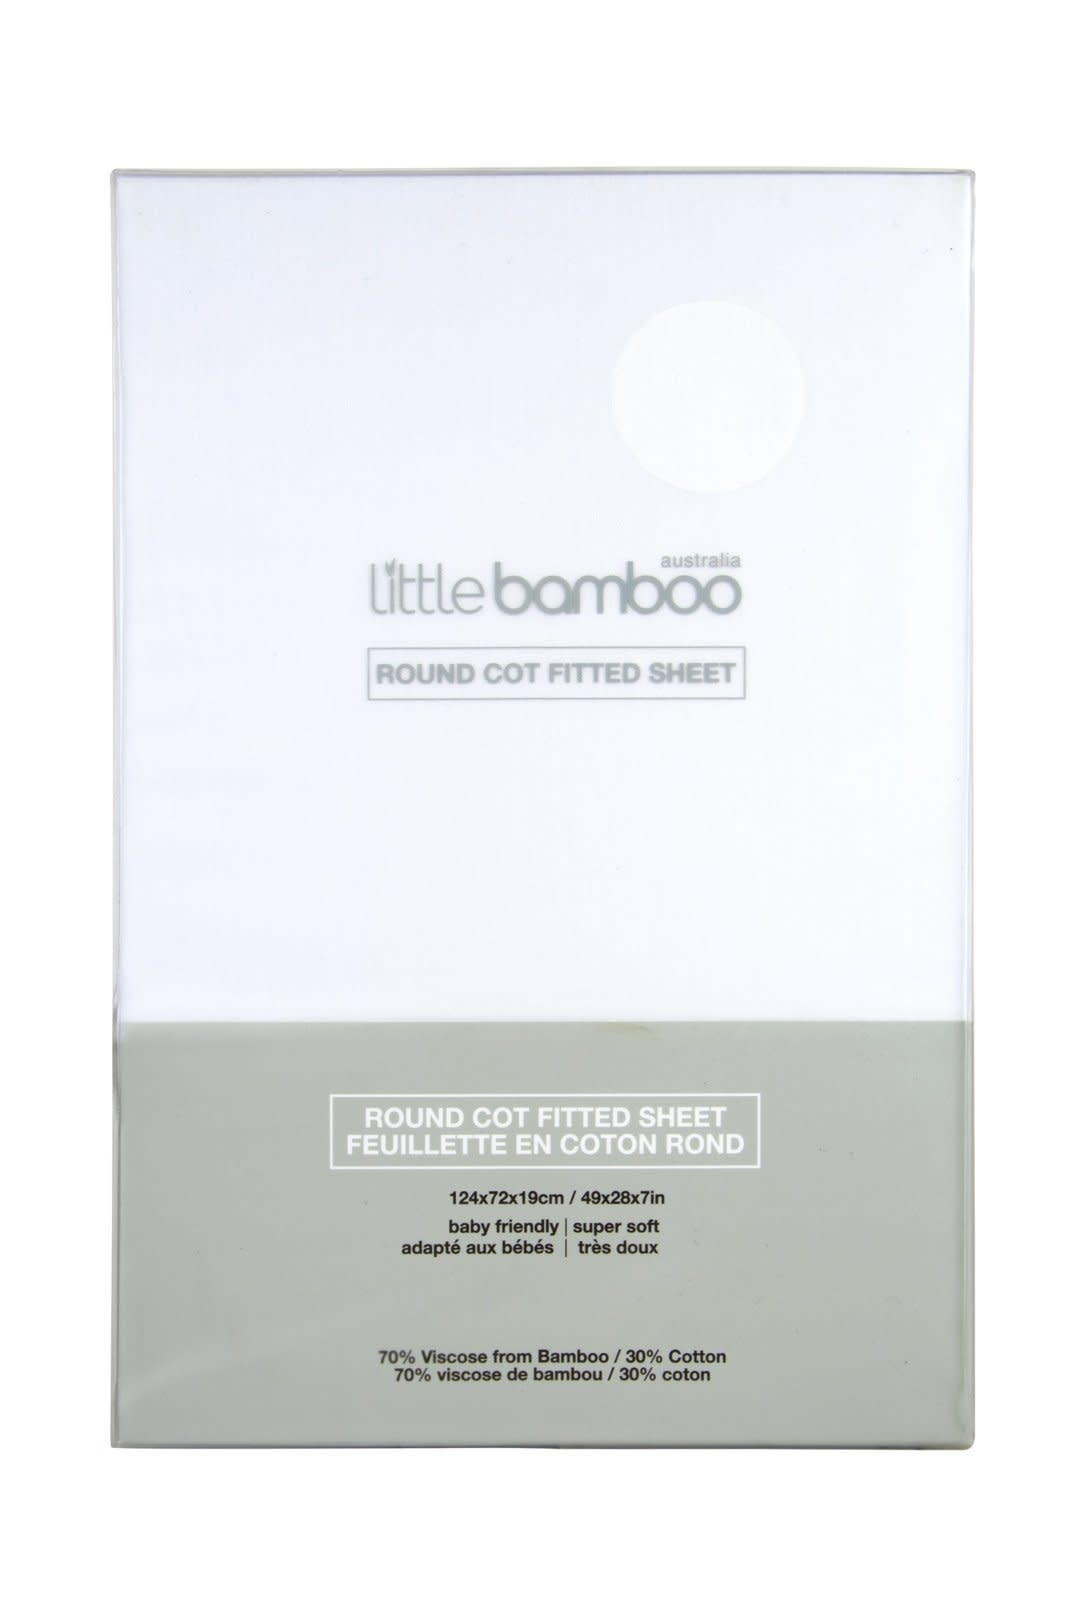 Little Bamboo Little Bamboo Round cot Fitted Sheets - 124x72x19cm